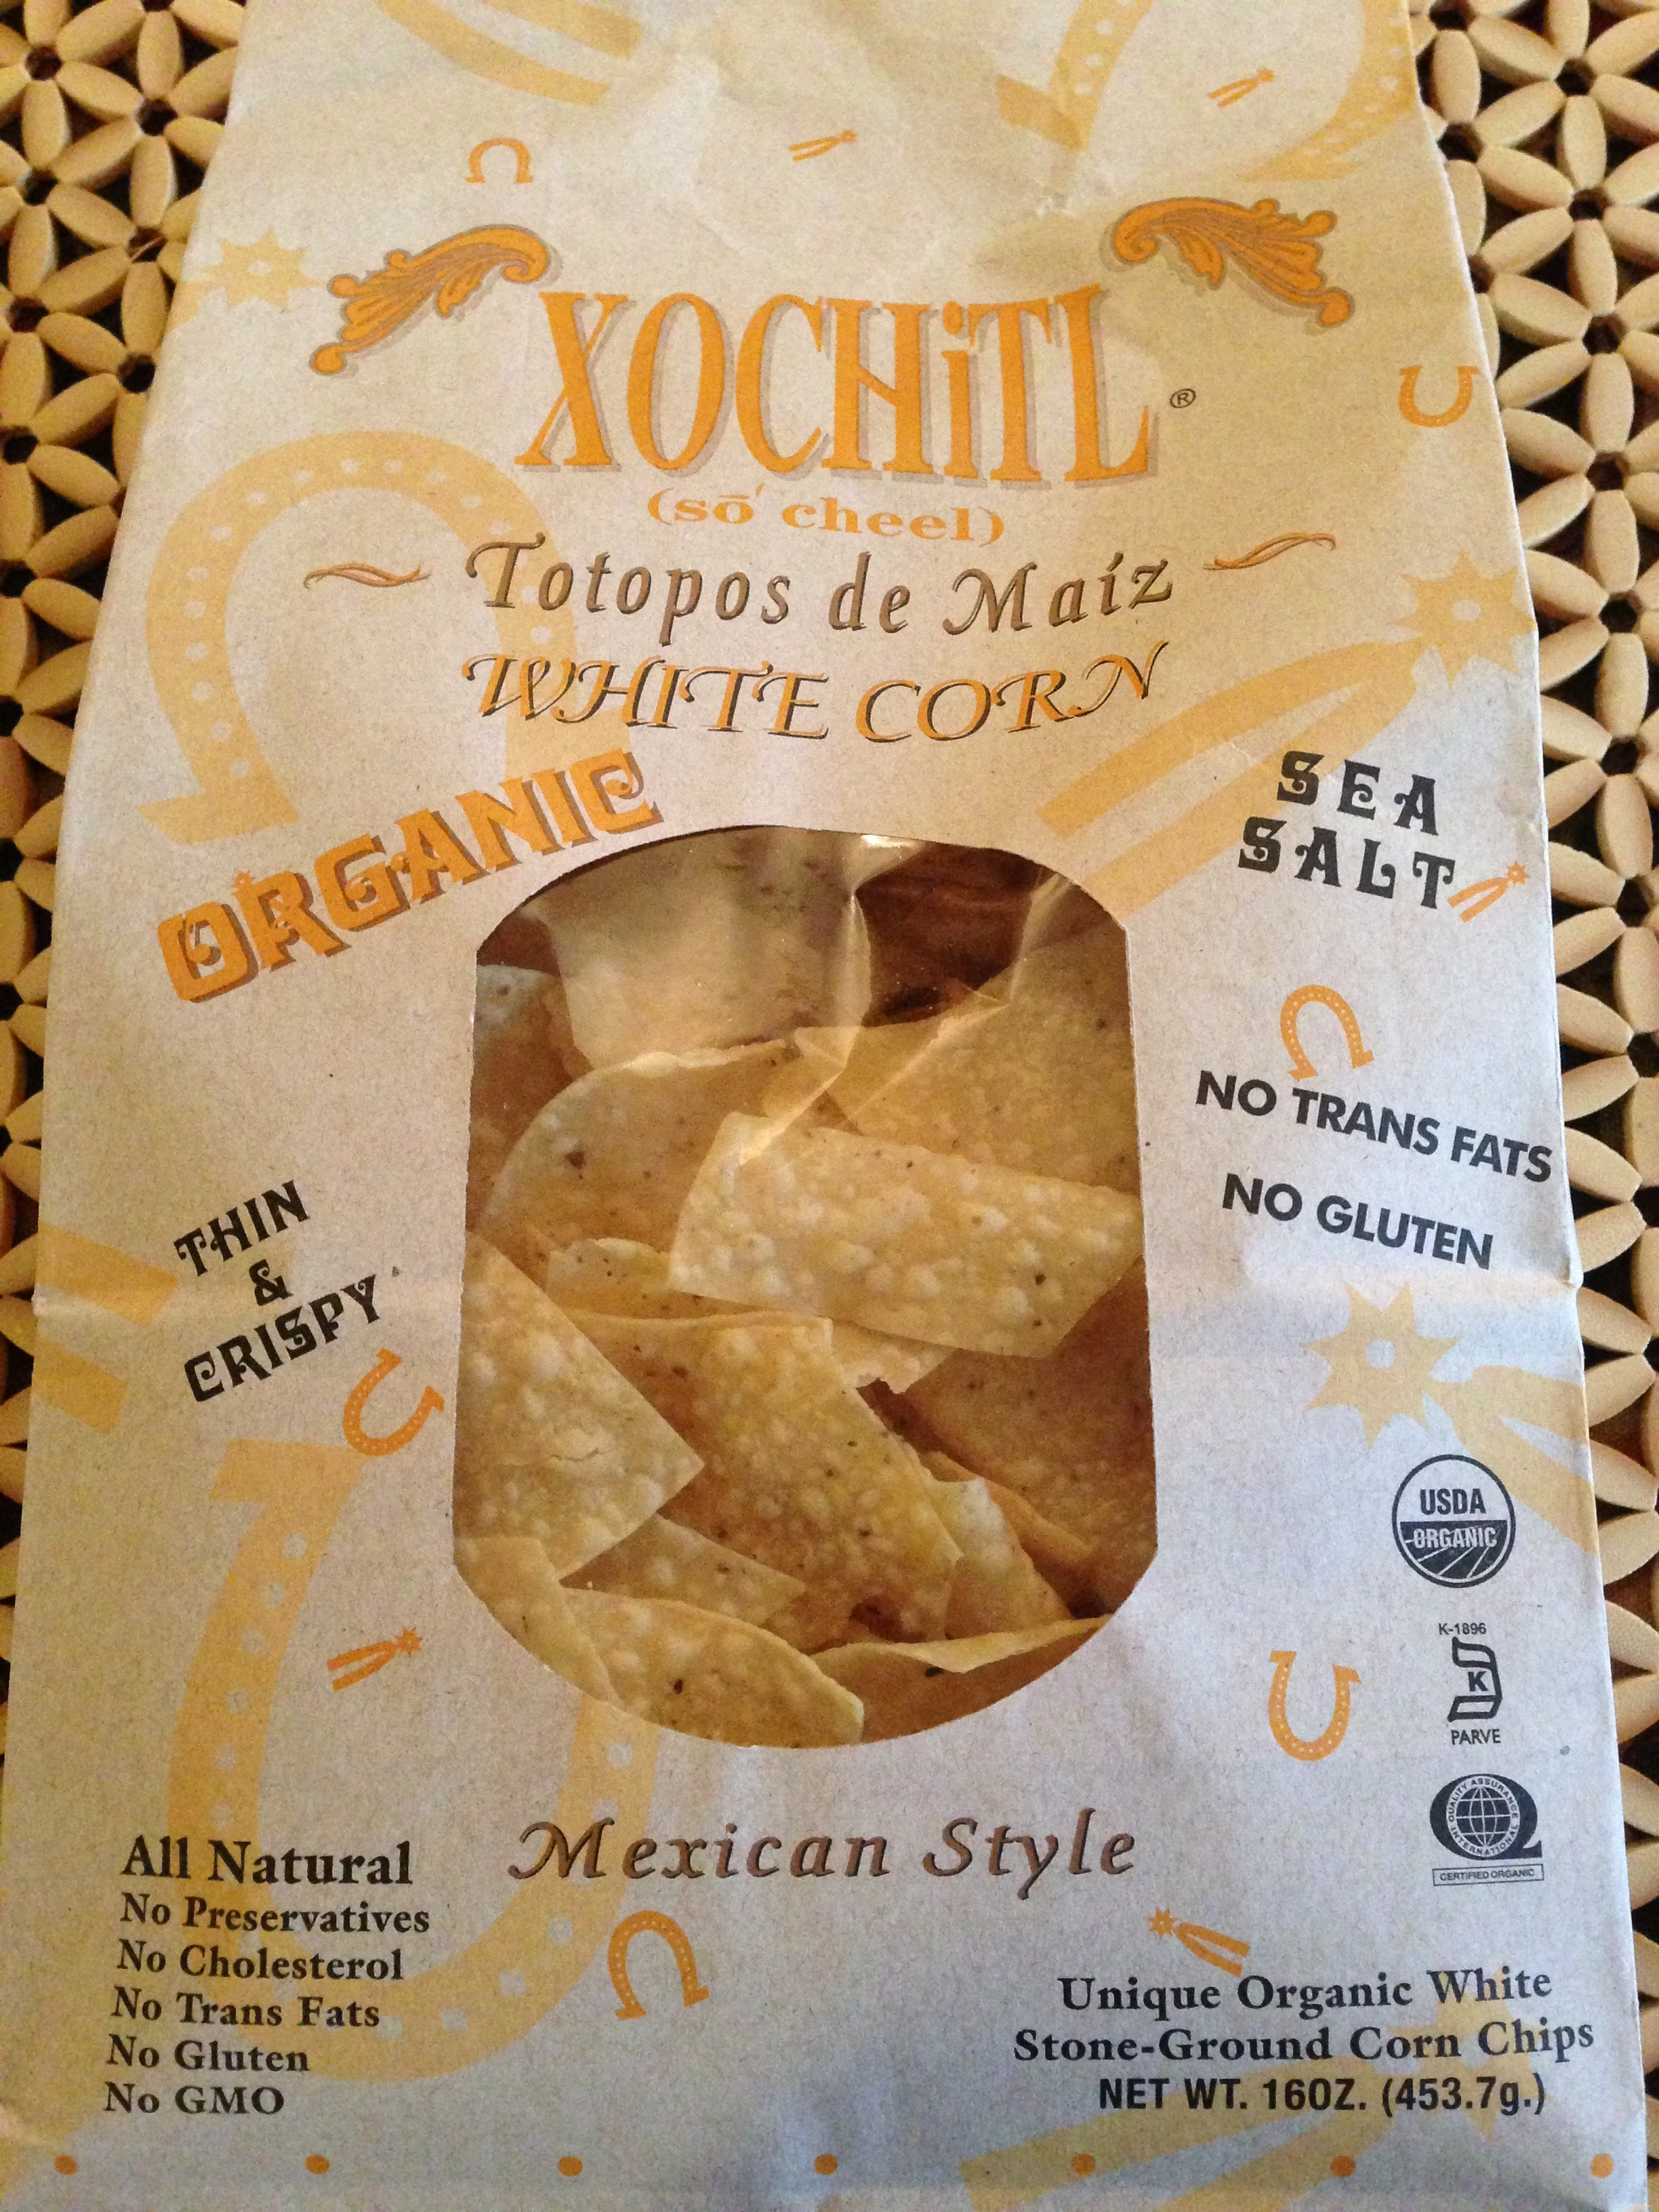 XOCHiTL Tortilla Chips - the best! (Photo Credit: Adroit Ideals)